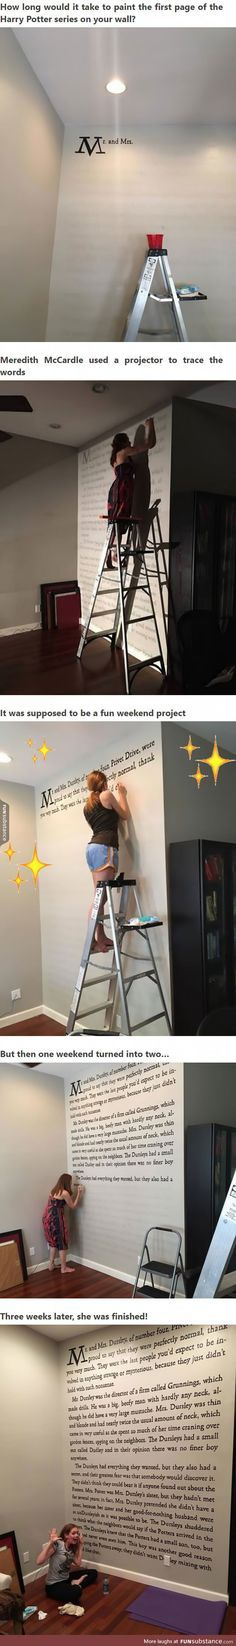 """A Harry Potter Fan Paints First Page Of """"Sorcerer's Stone"""" Onto Her Wall"""